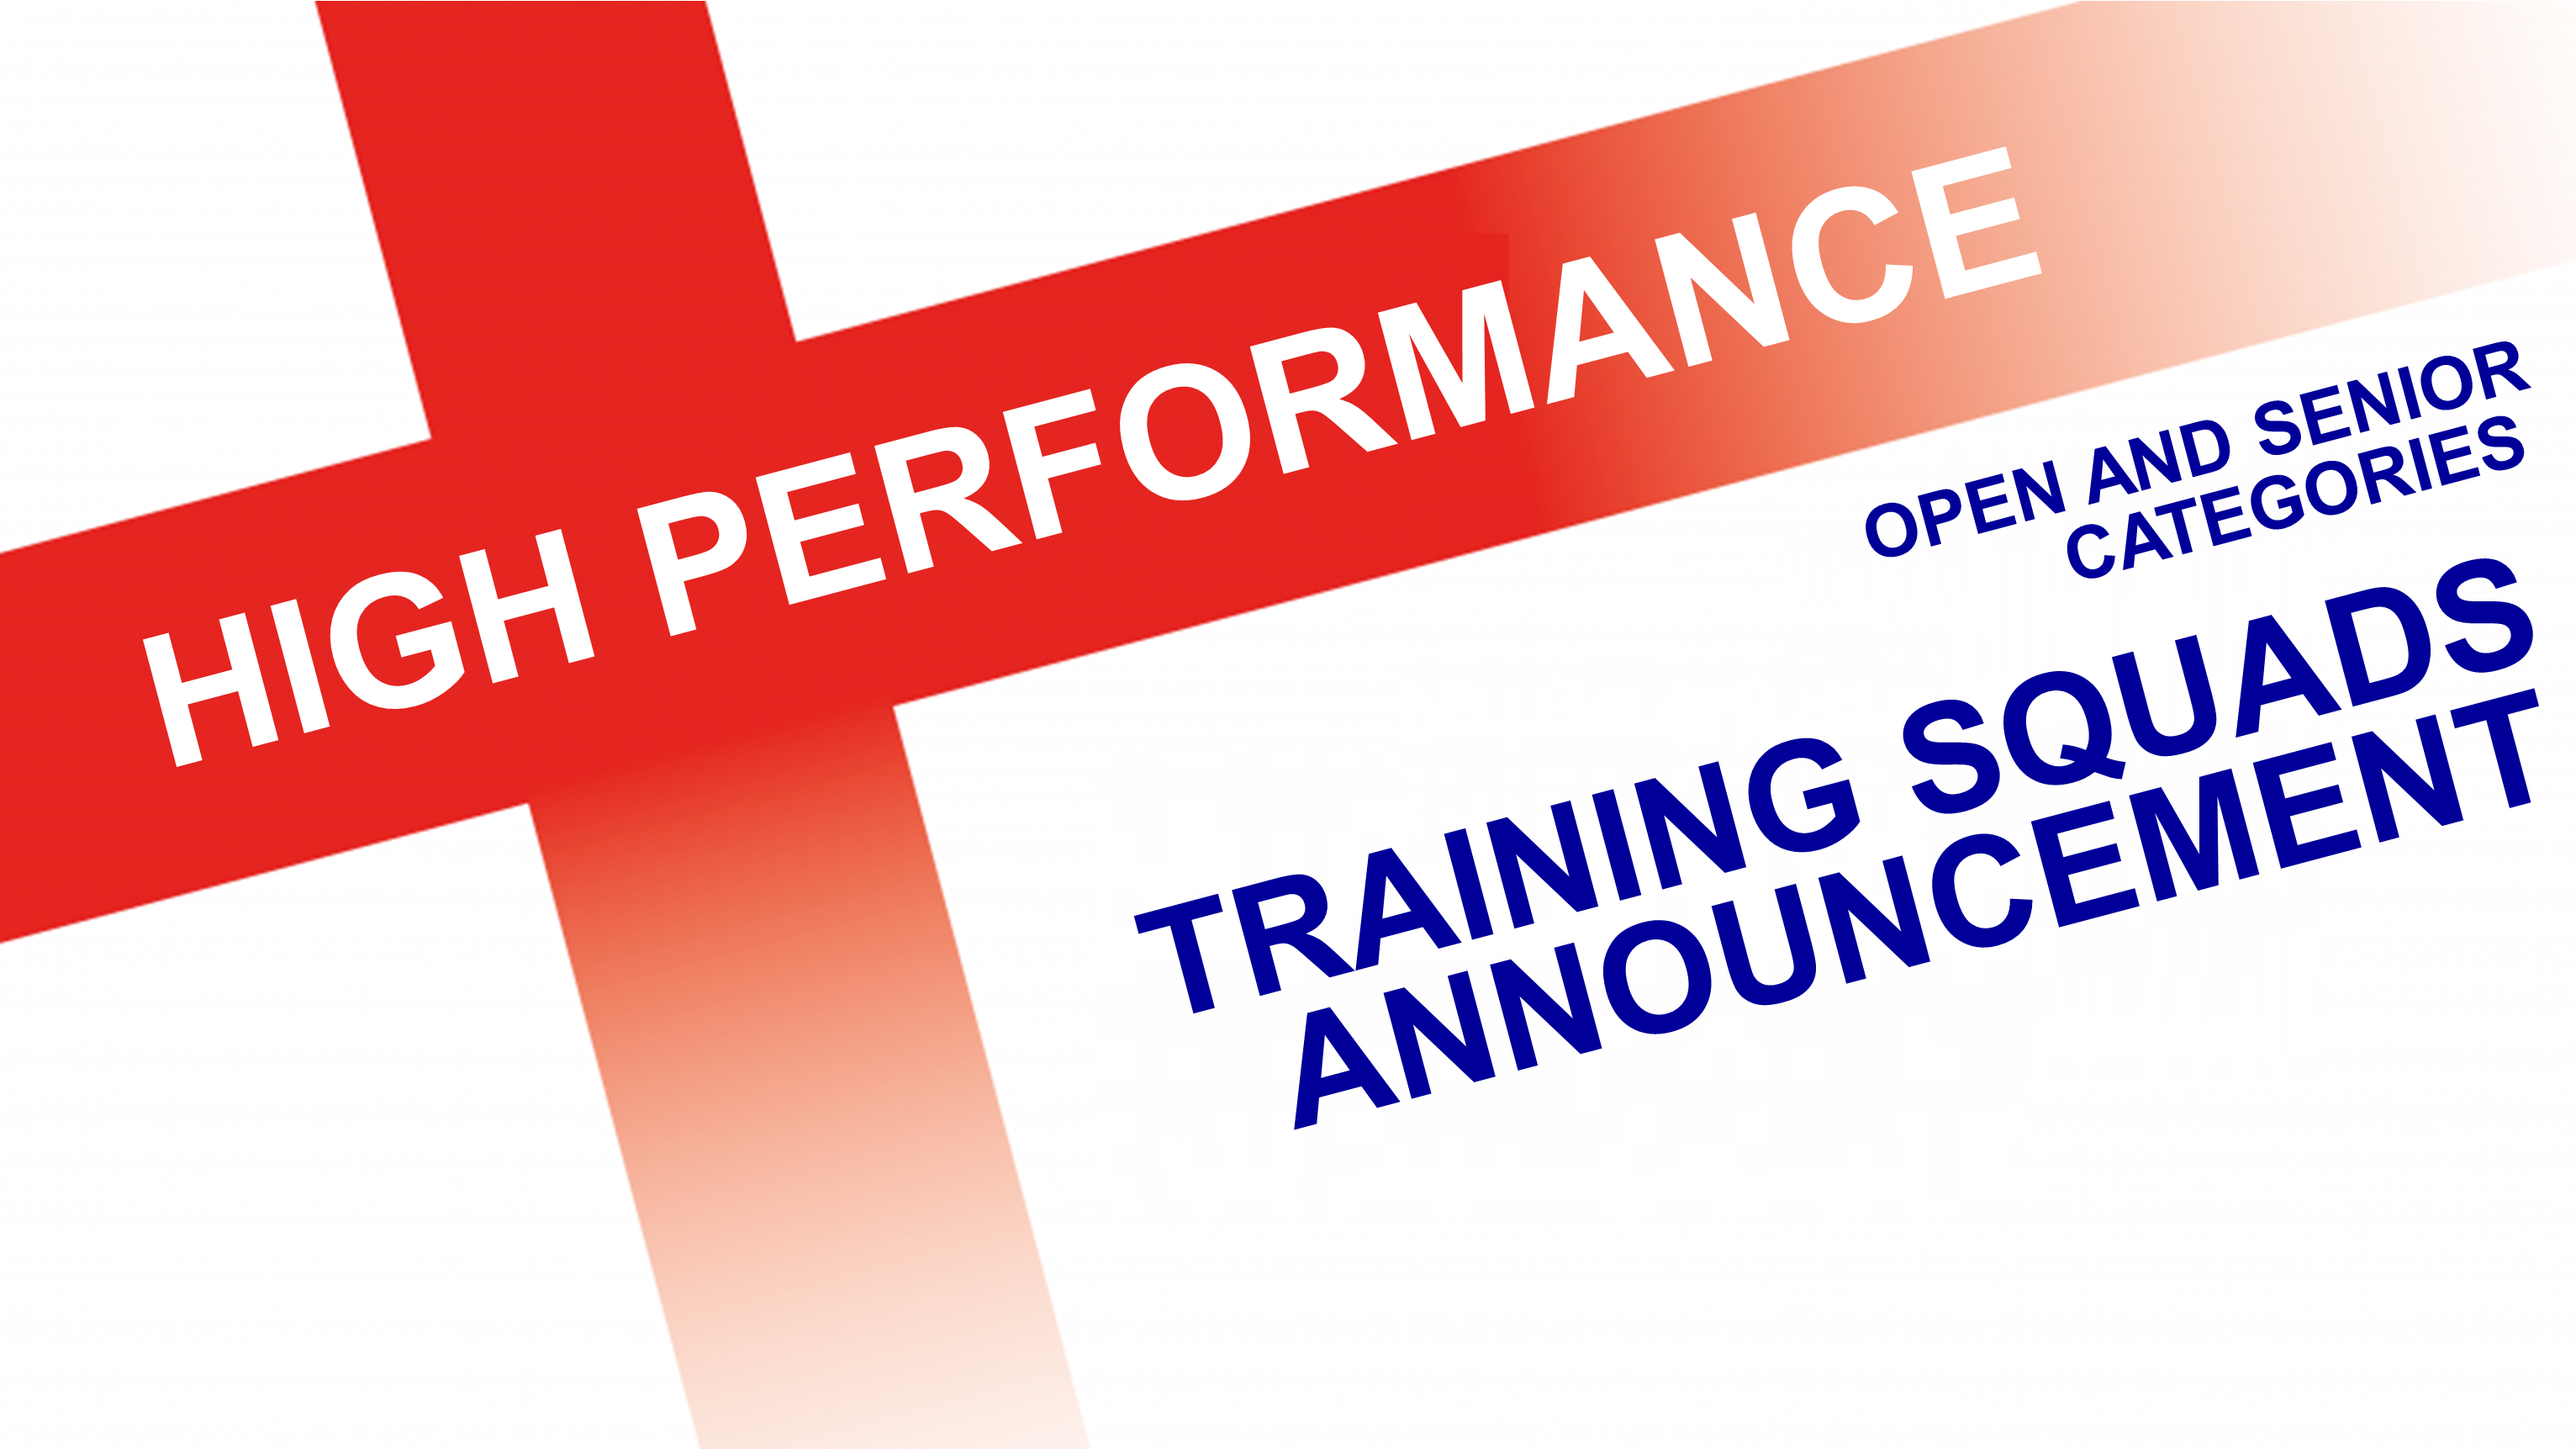 England Touch | High Performance Training Squad (HPTS)